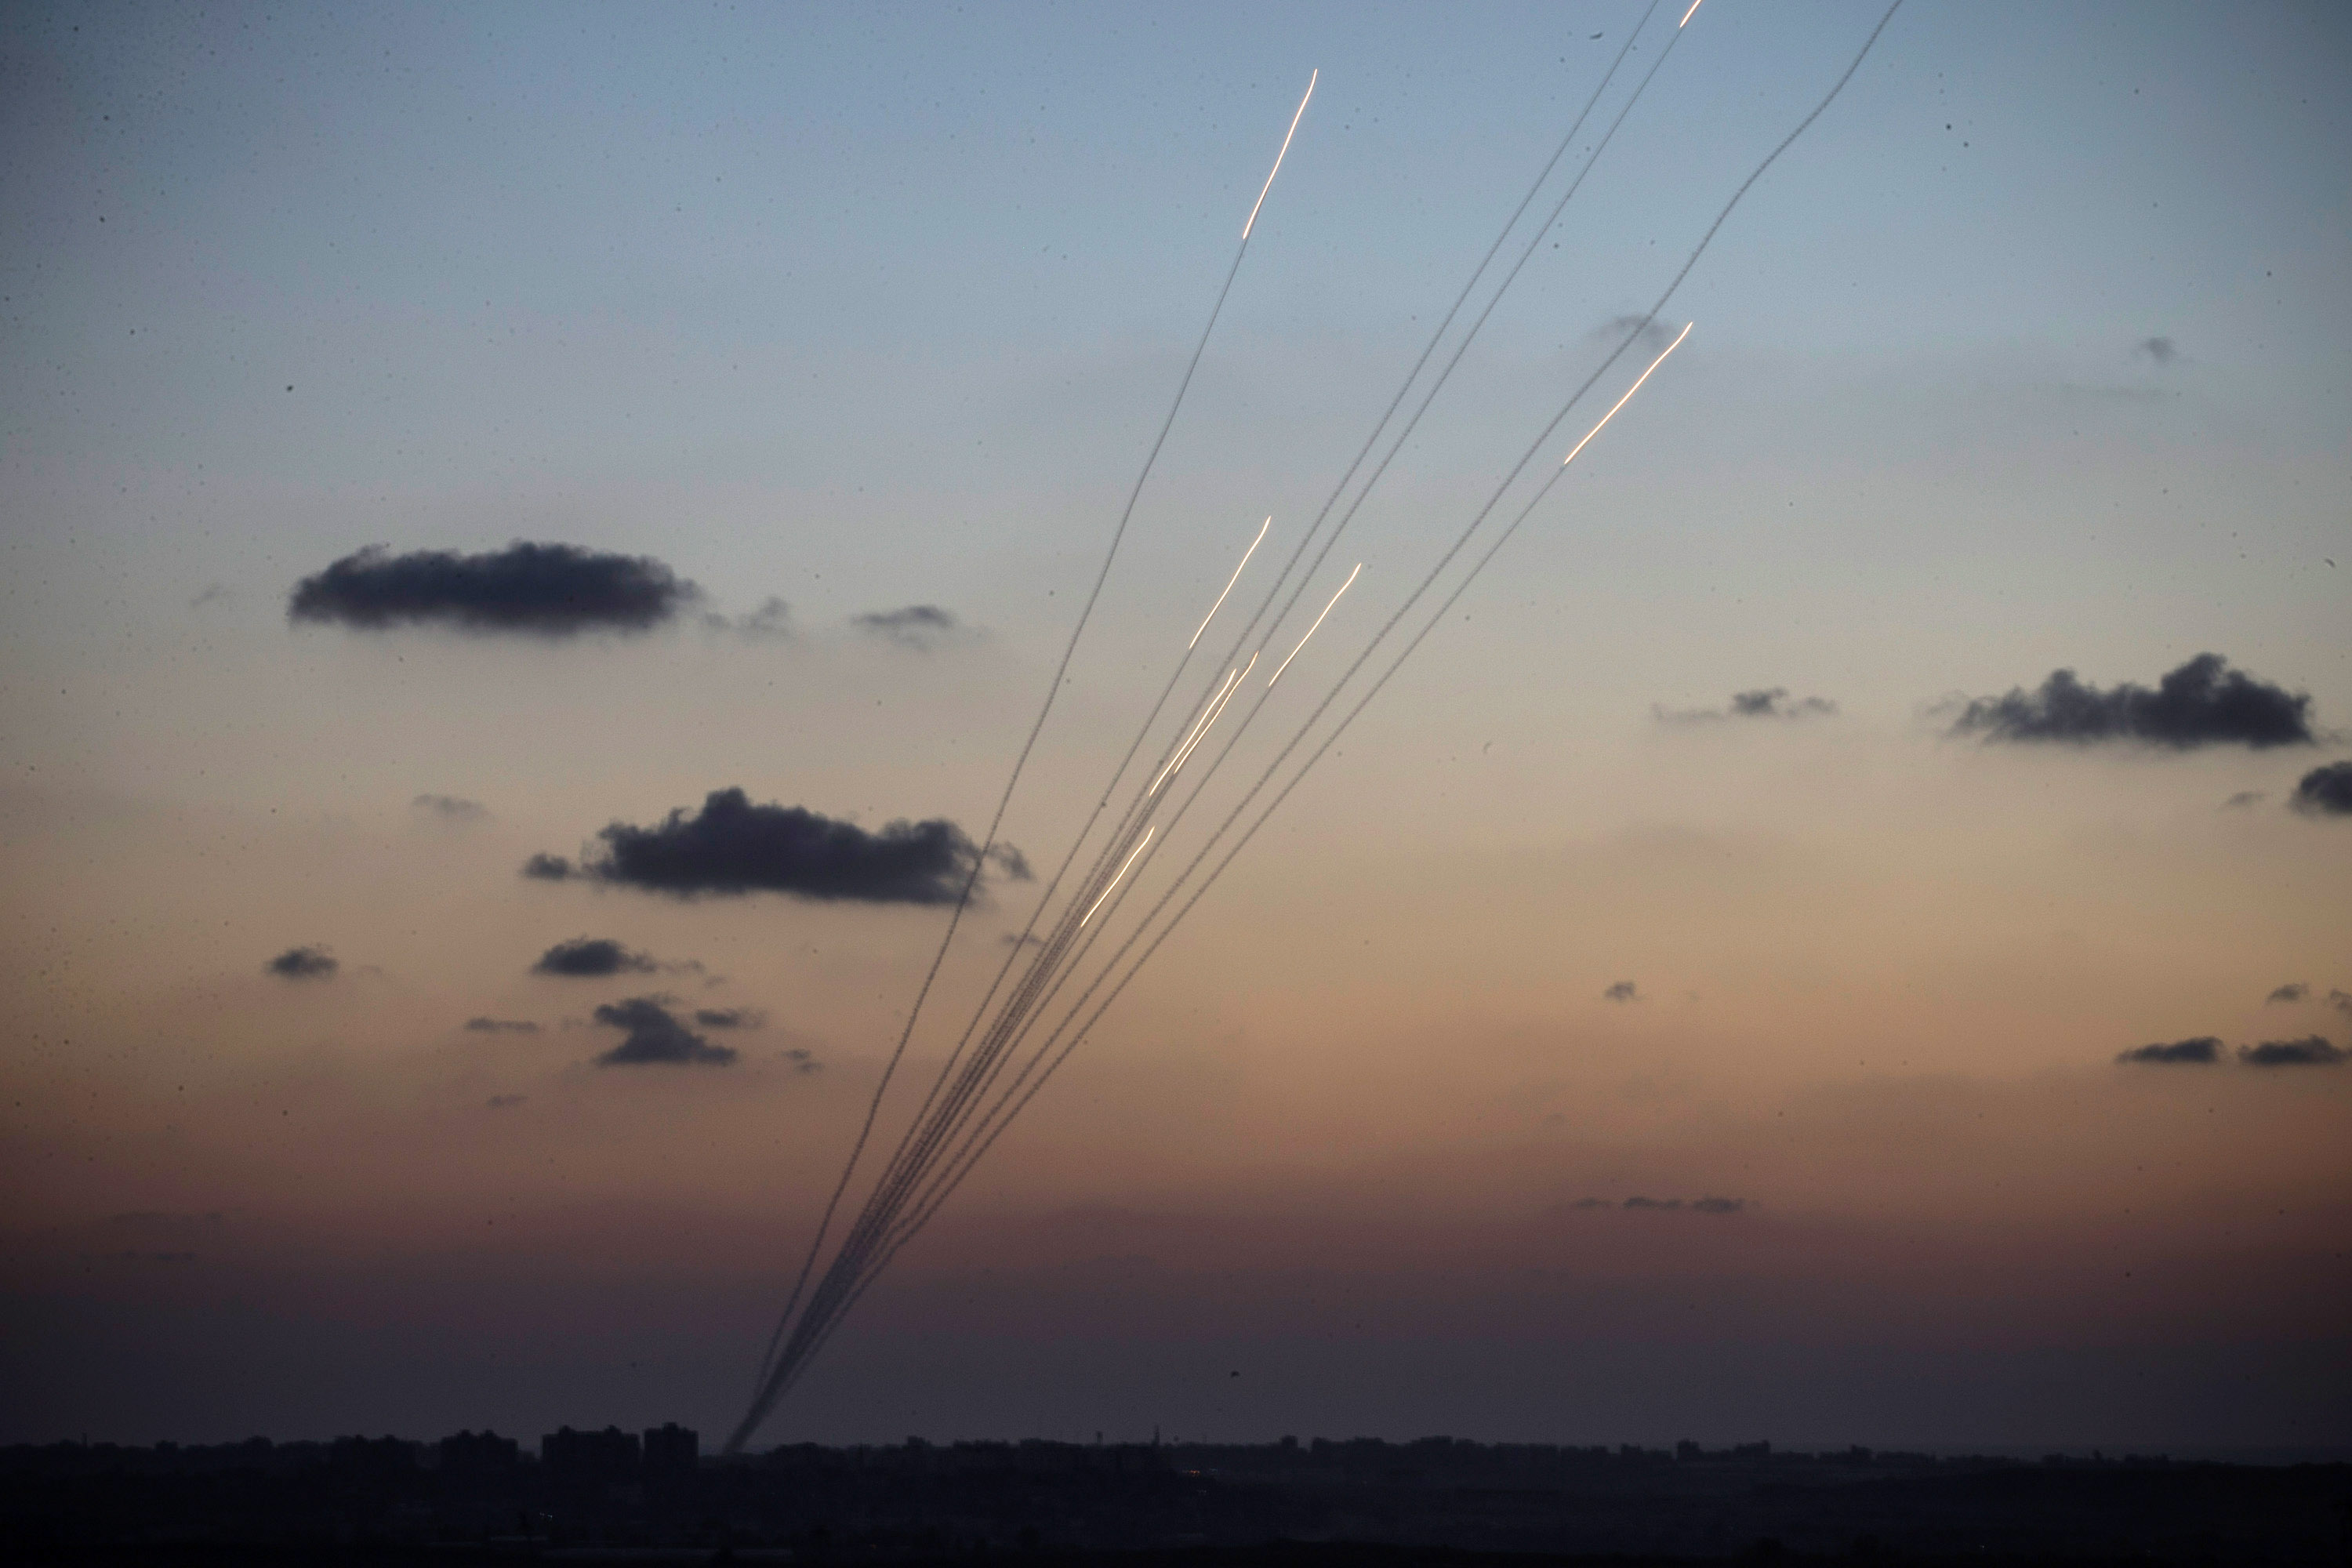 Rockets are fired from inside the Gaza Strip towards Israel on the sixth day of Israel's operation Protective Edge on July 13, 2014, as seen from Sderot, Israel. (Andrew Burton/Getty Images)